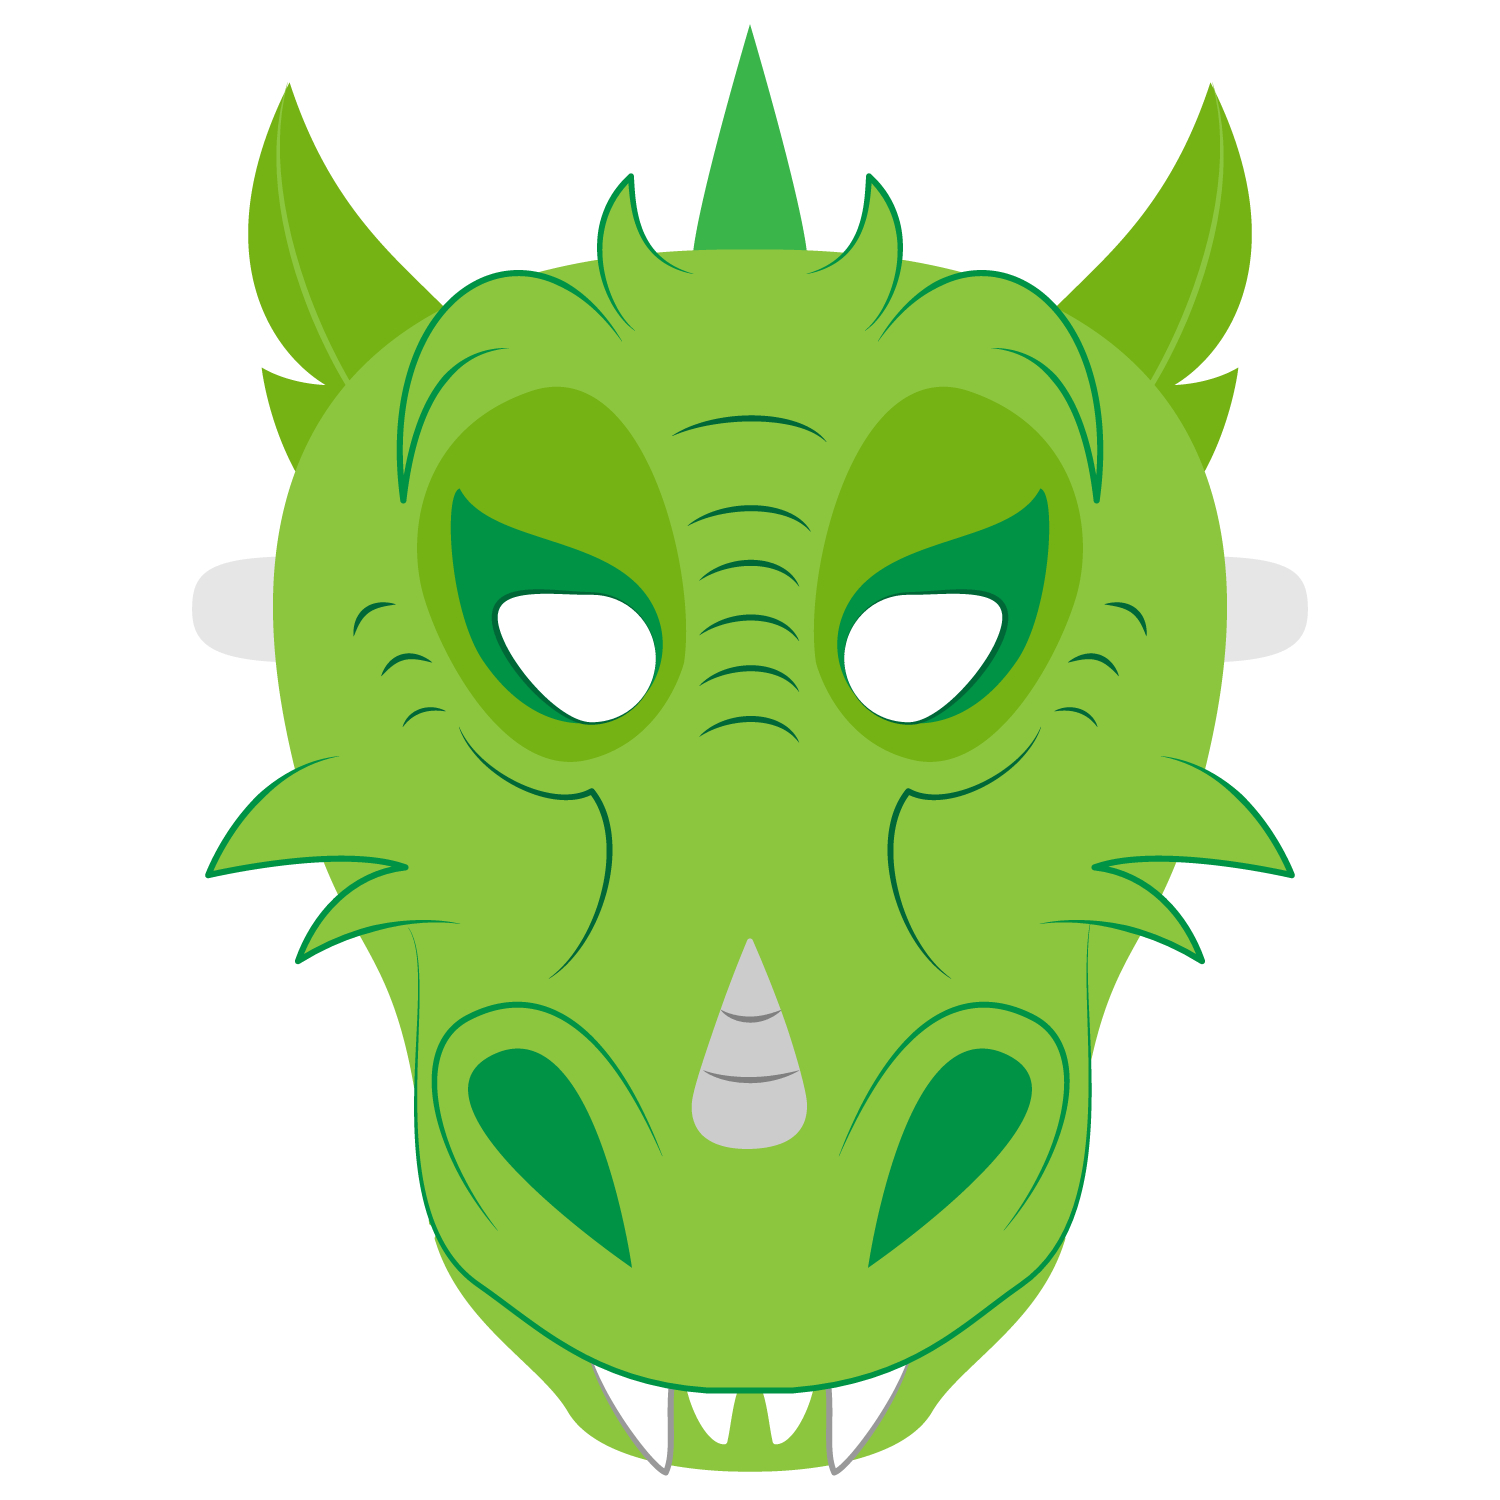 Dragon Mask Template | Free Printable Papercraft Templates - Dragon Mask Printable Free